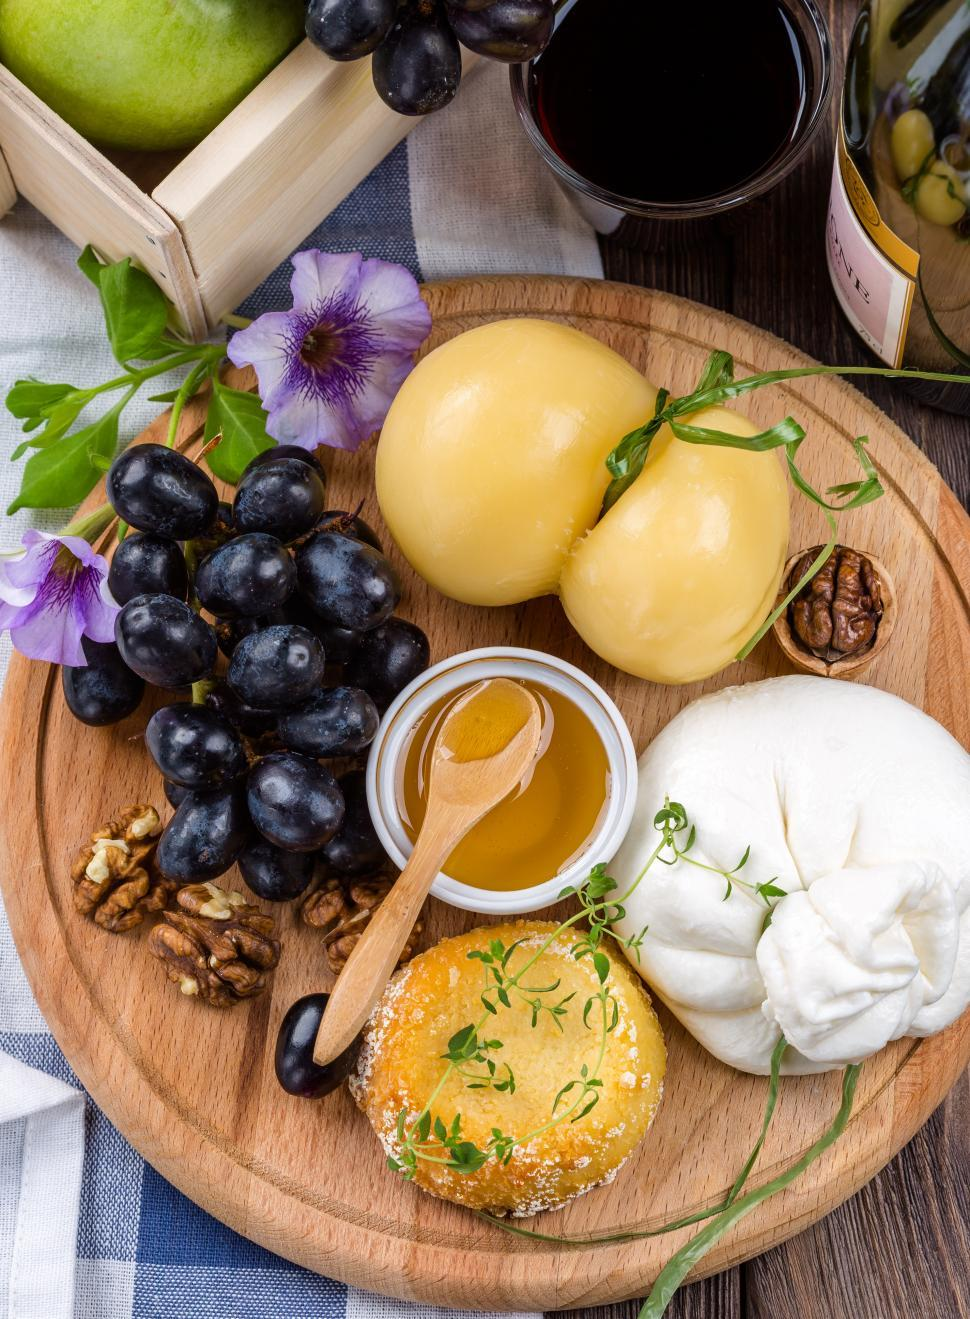 Download Free Stock HD Photo of Cheese and fruits on wooden board Online